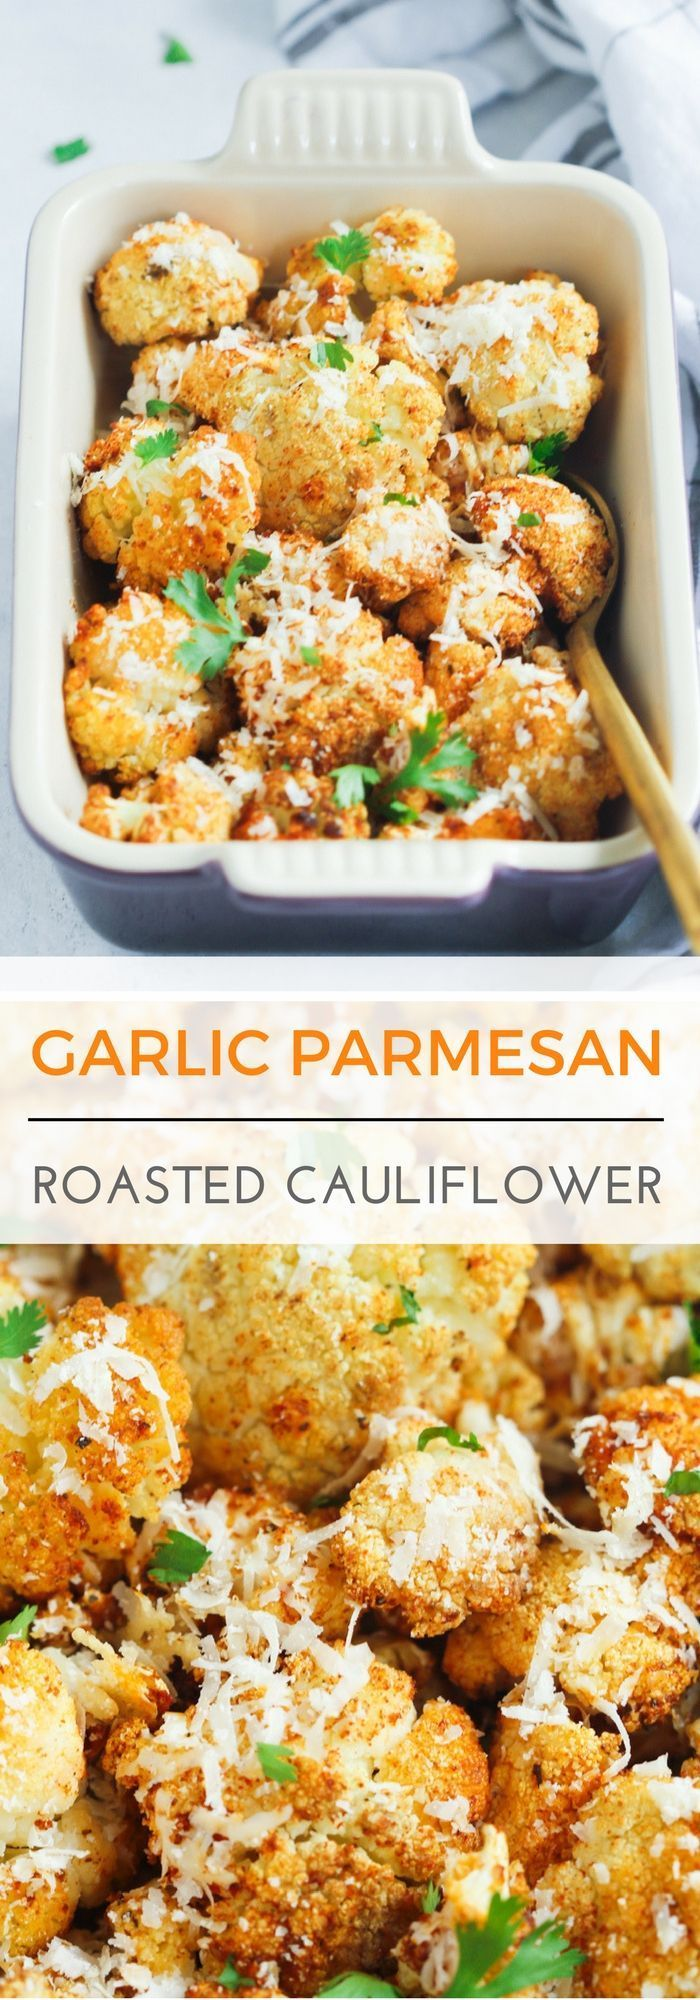 Garlic Parmesan Roasted Cauliflower - This easy Garlic Parmesan Roasted Cauliflower is a perfect low-carb side dish for any occasion. It's well seasoned with garlic, black pepper, paprika and Parmesan. | www.primaverakitchen.com